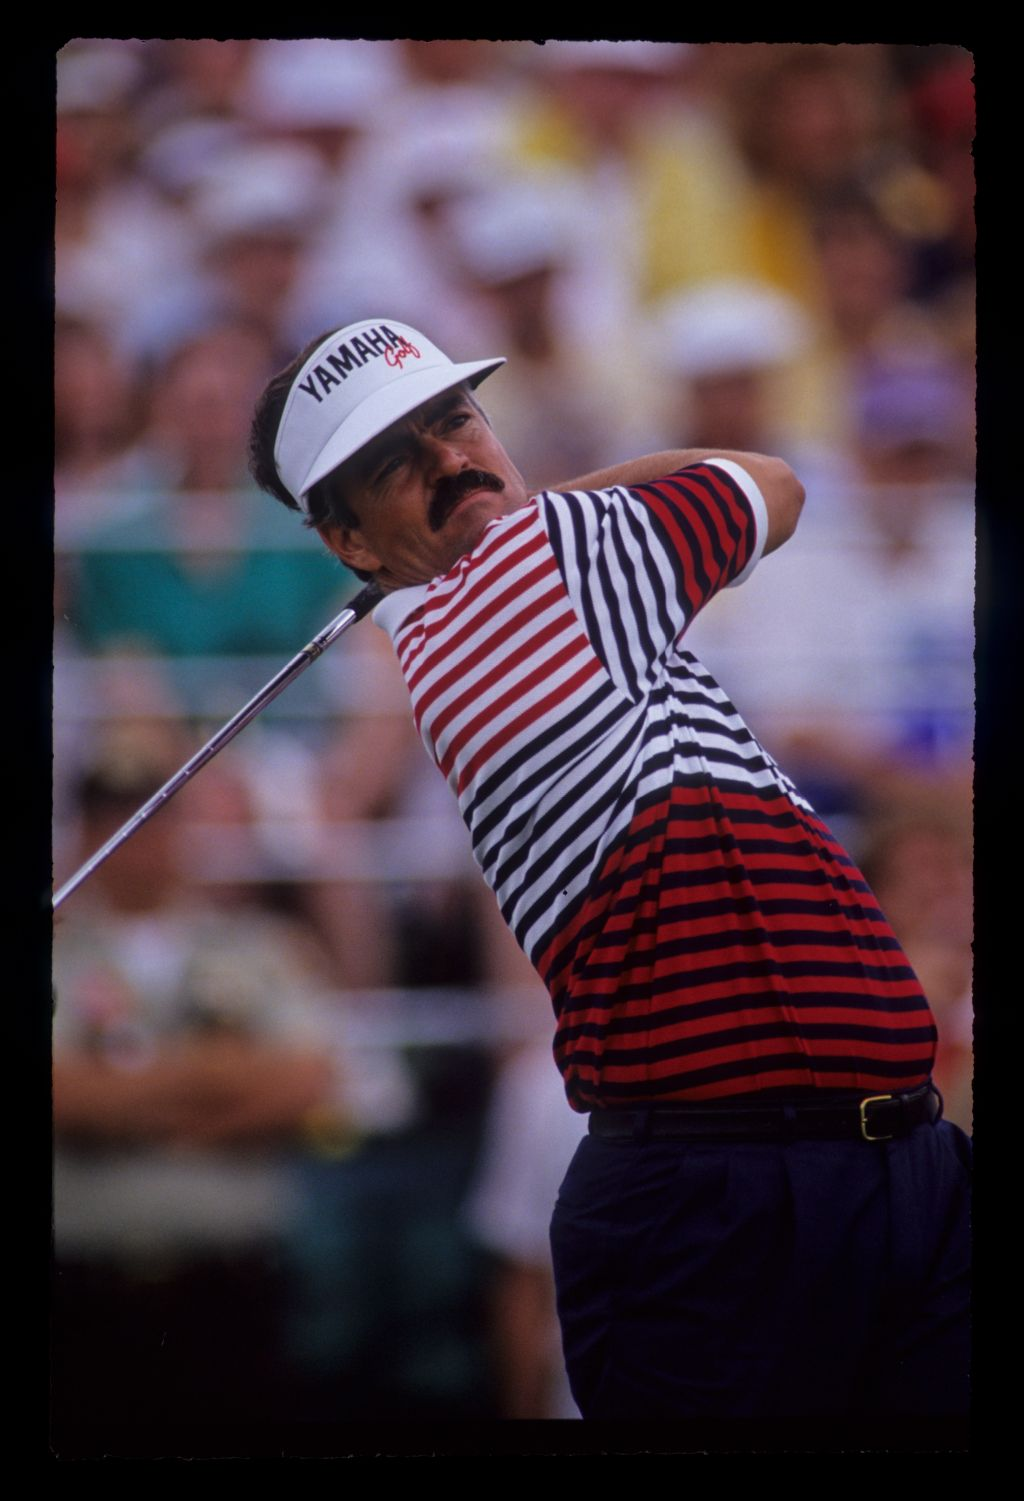 Scott Simpson following through on the tee during the 1991 US Open